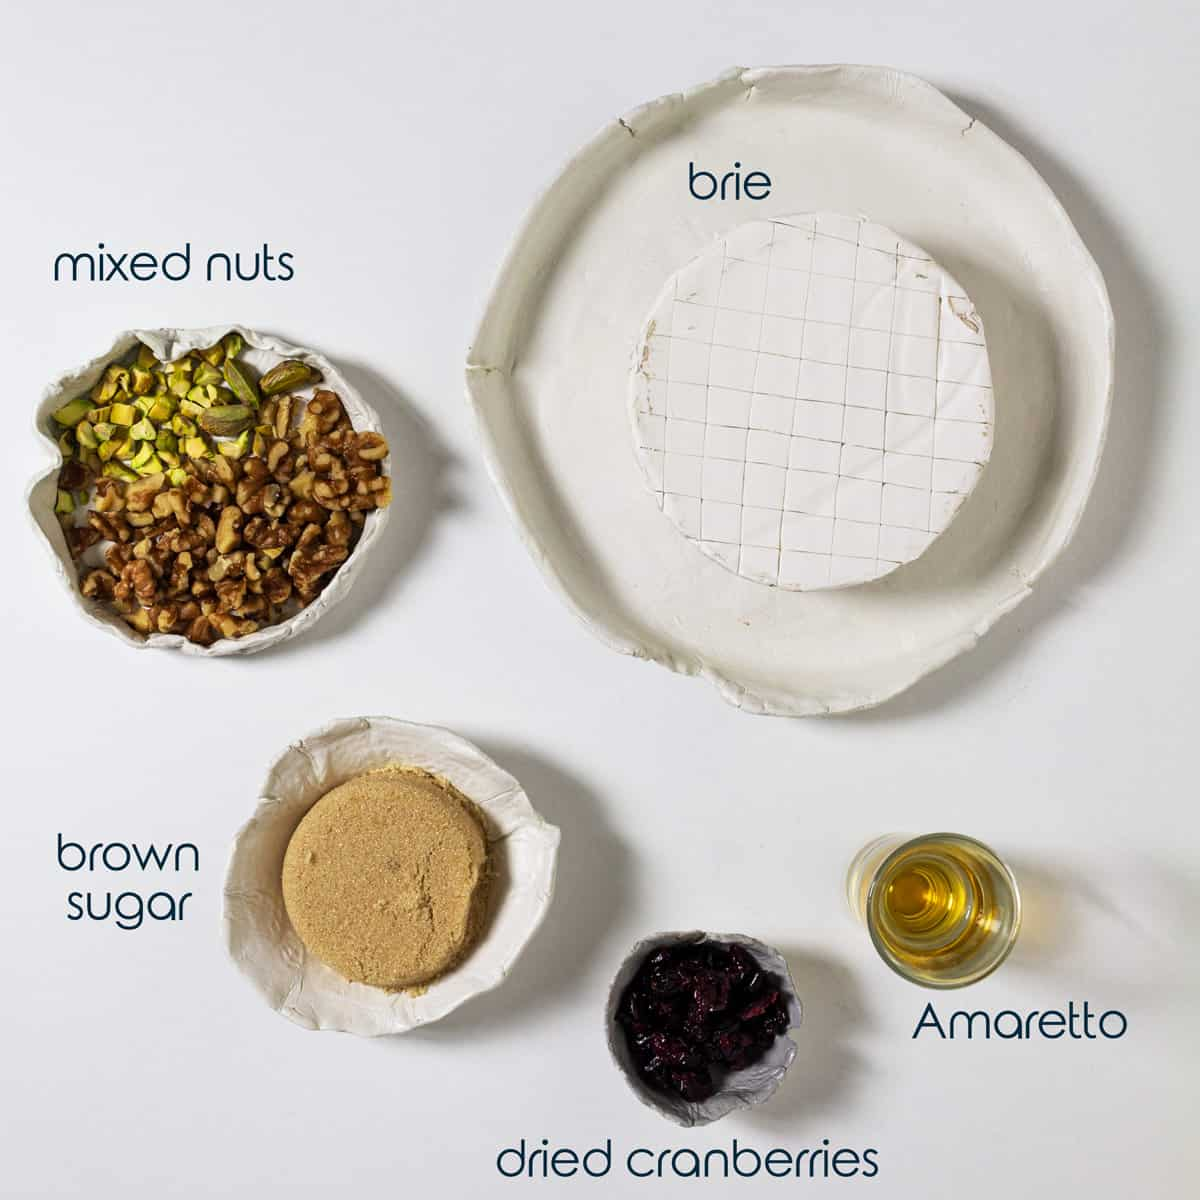 Ingredients for baked brie recipe with sugar, nuts, and dried fruit.